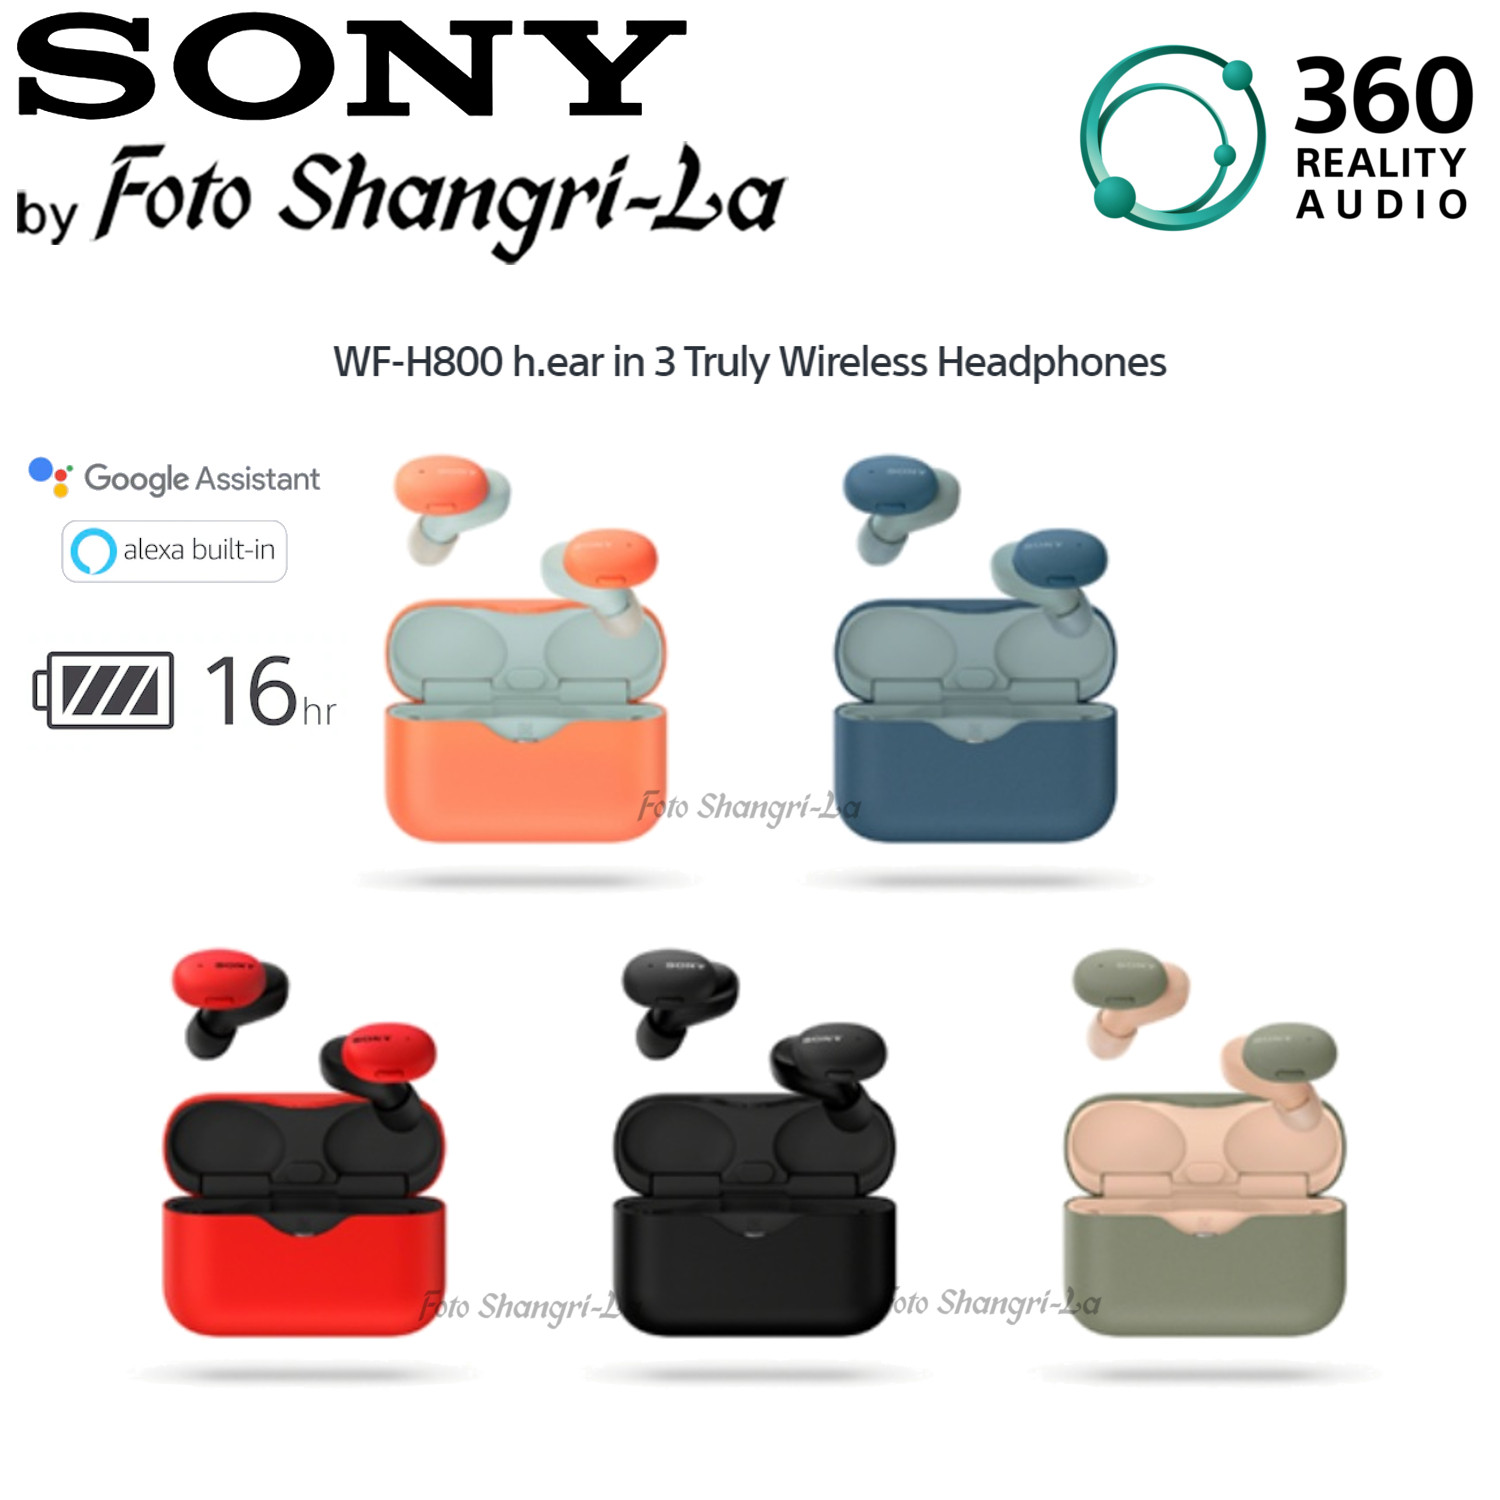 Sony WF-H800 h.ear in 3 Truly Wireless Earbuds 360 Reality Headphones